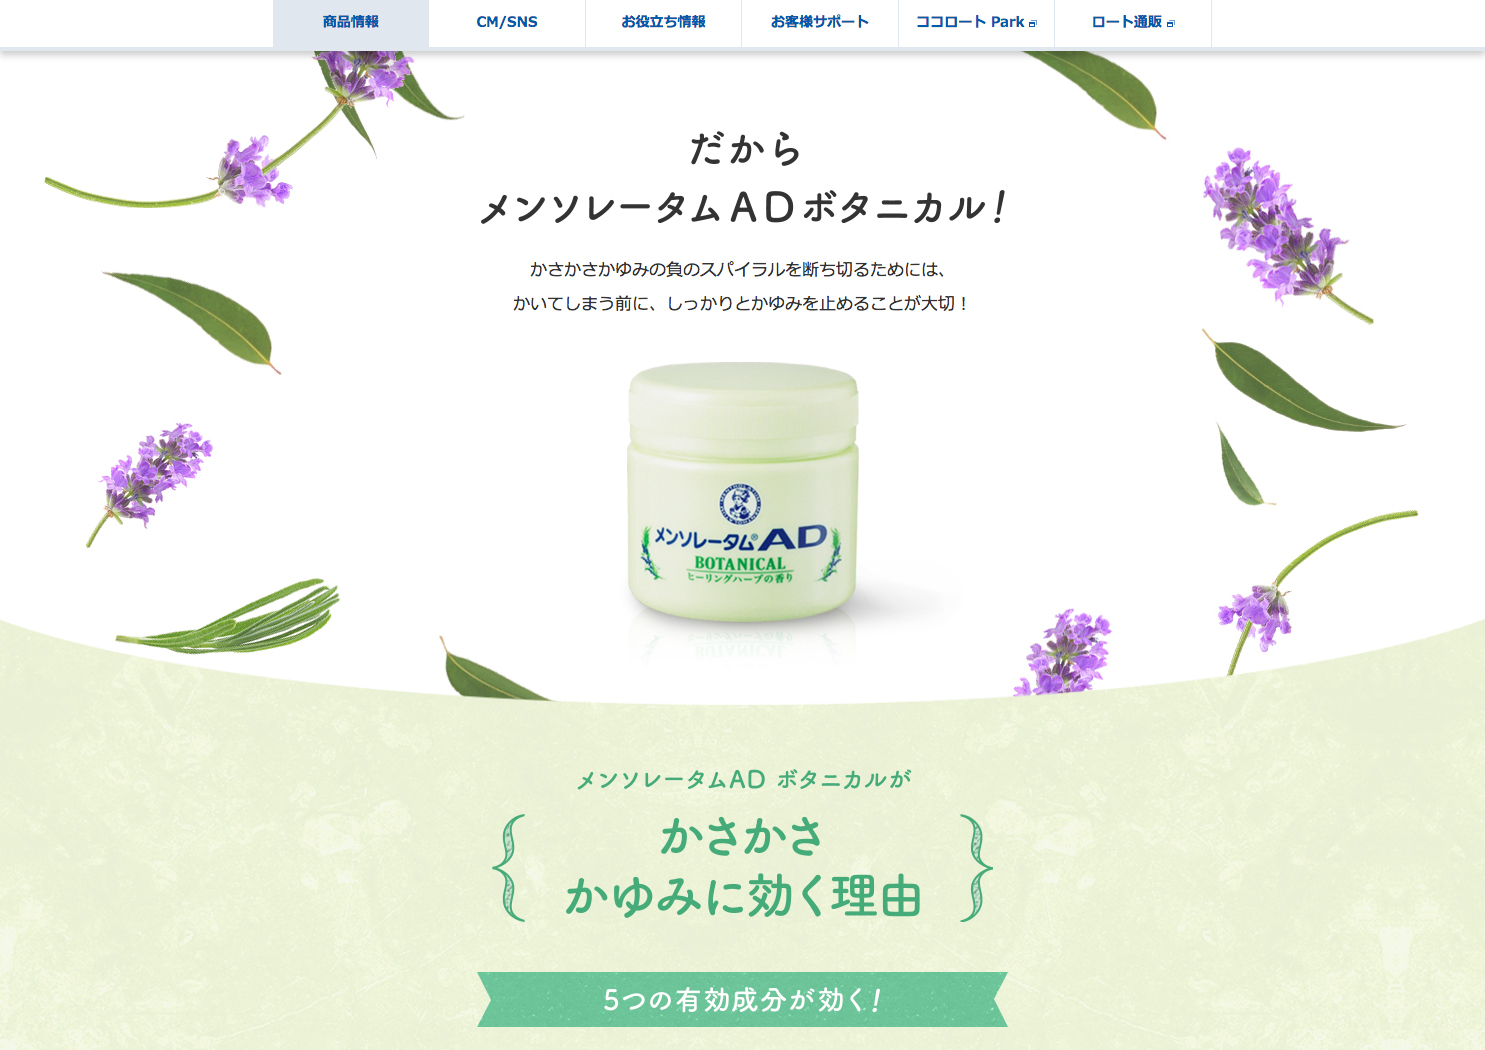 AD BOTANICAL Official Website 2017